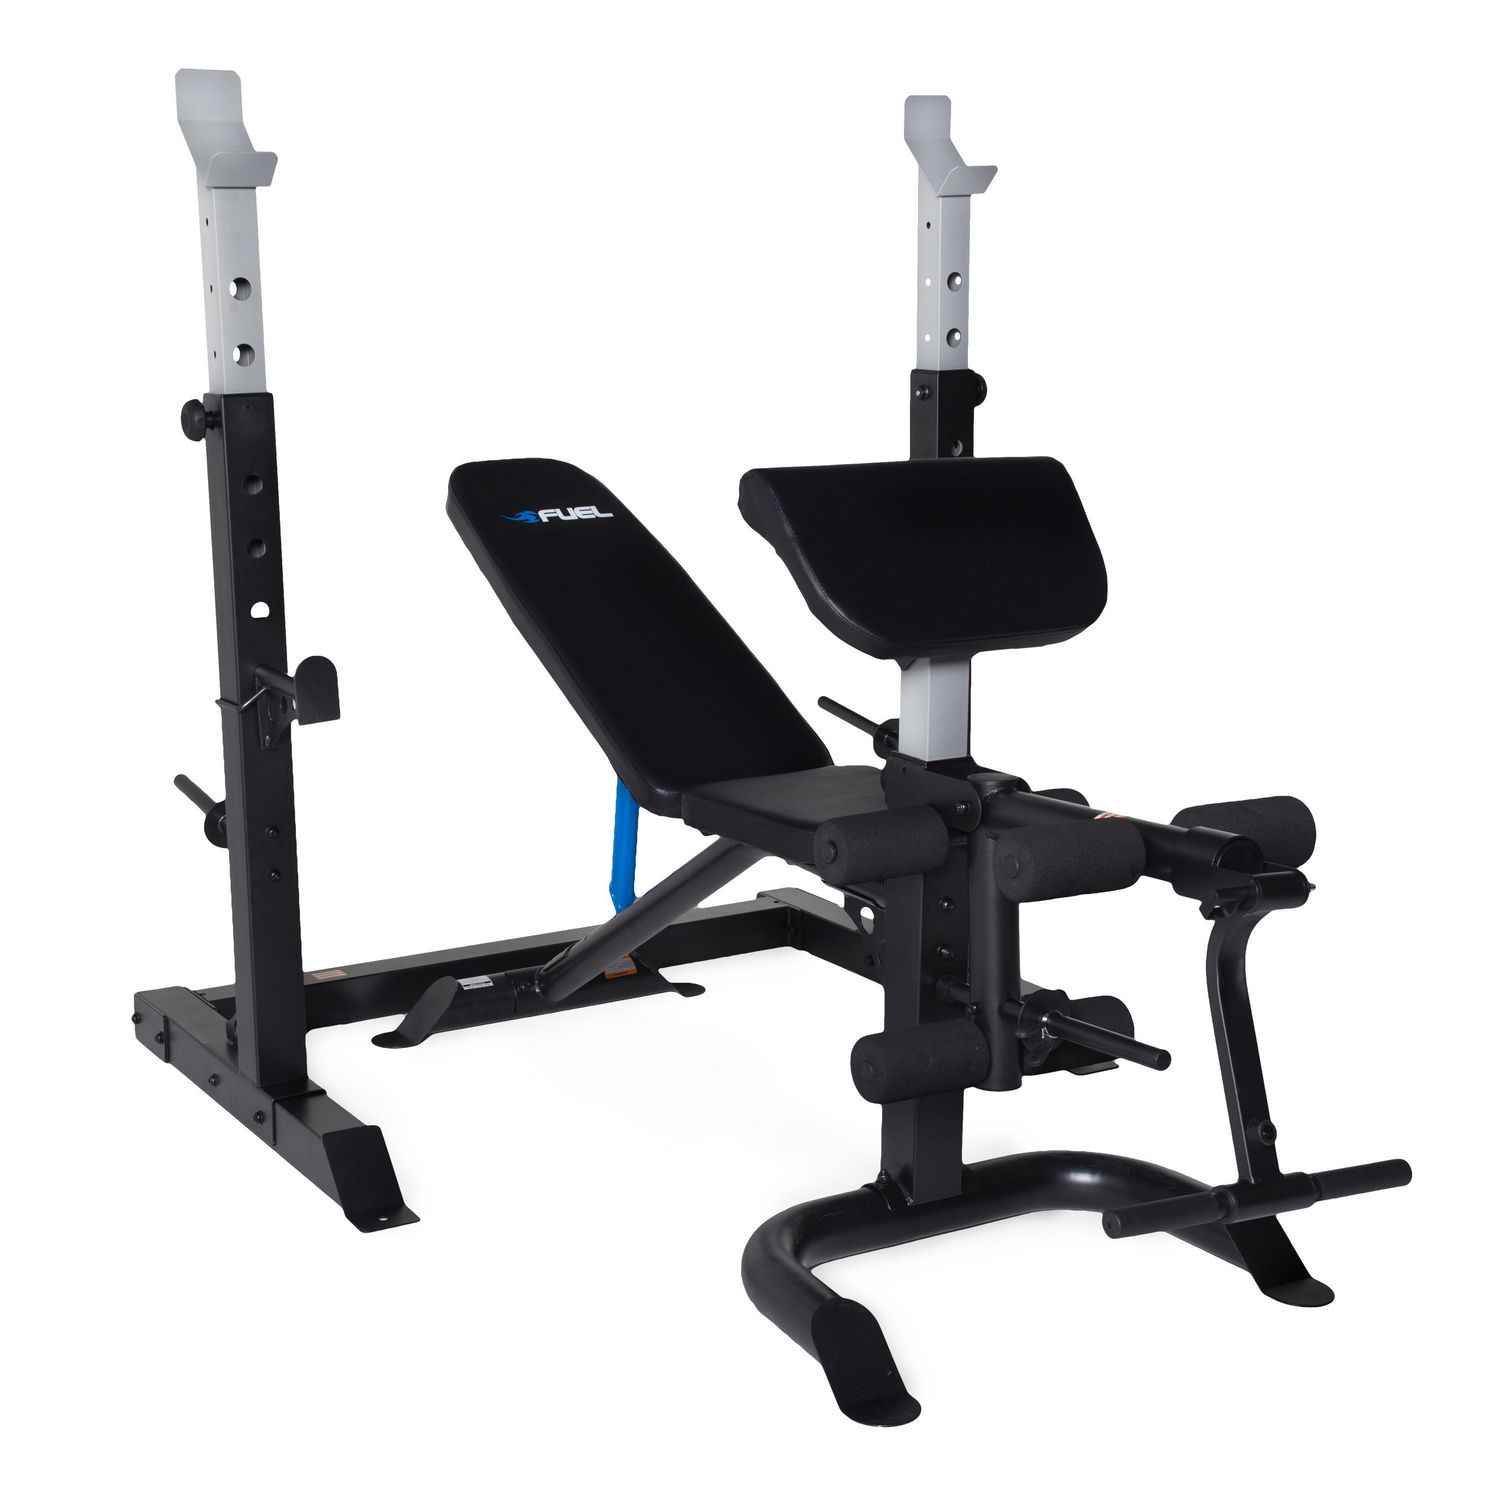 Weight Bench for Sale Craigslist | Craigslist Weight Bench | Bench Press Craigslist